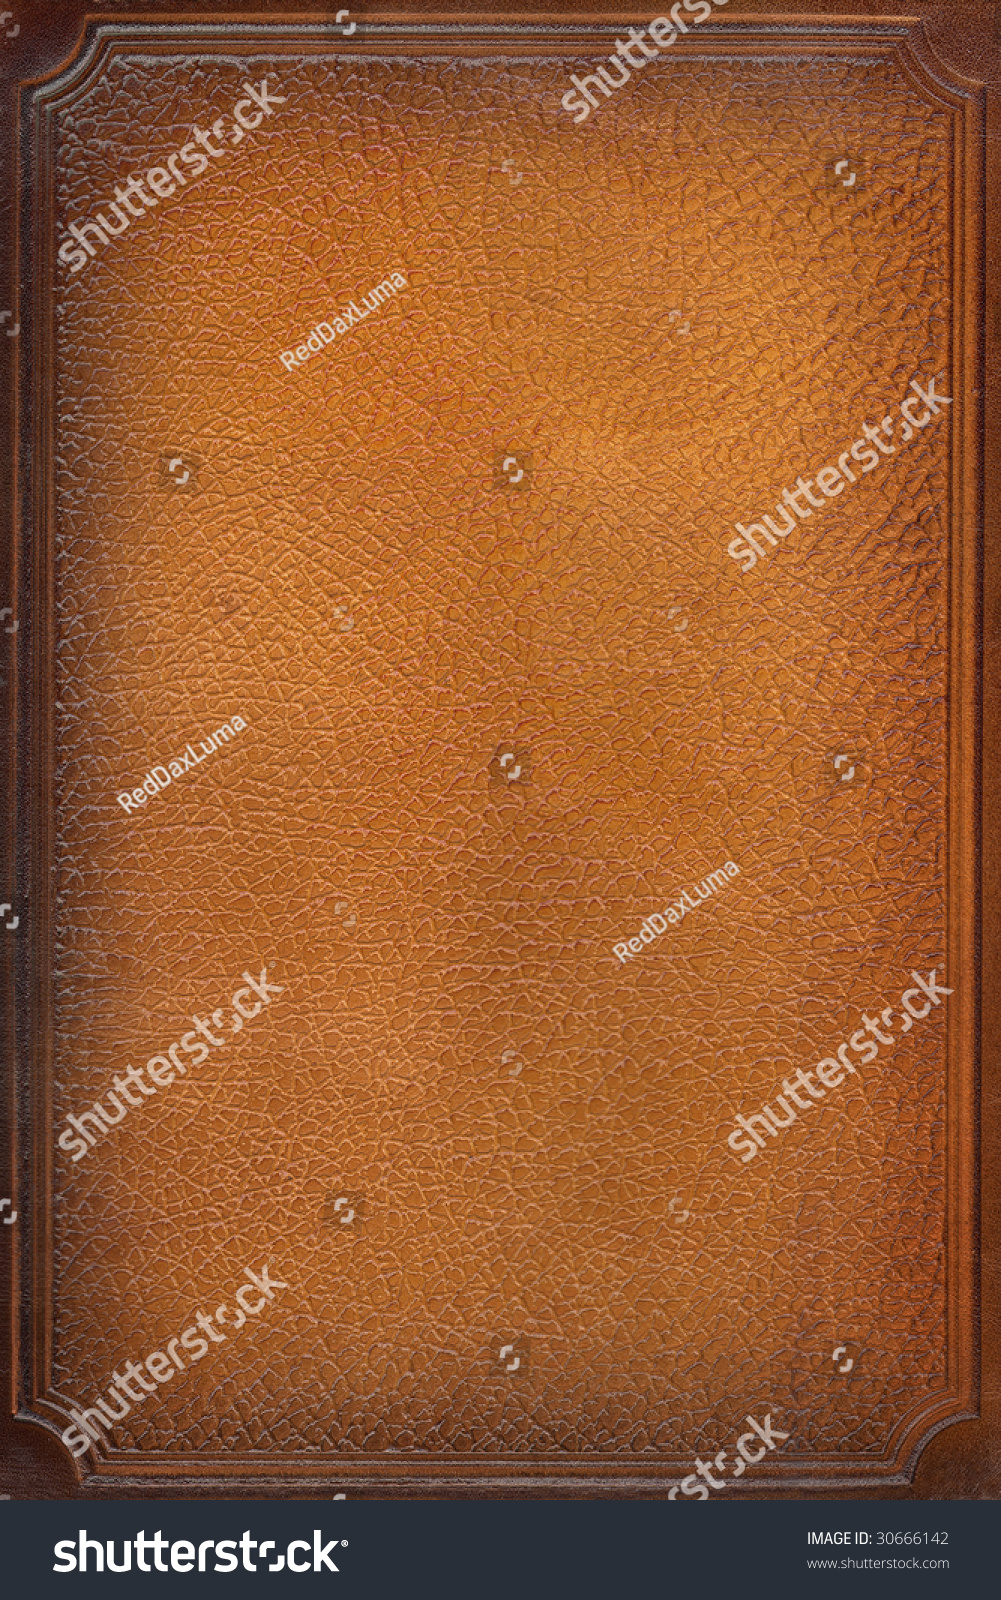 Leather Craft Book Cover : Brown leather craft tooled vintage book stock photo